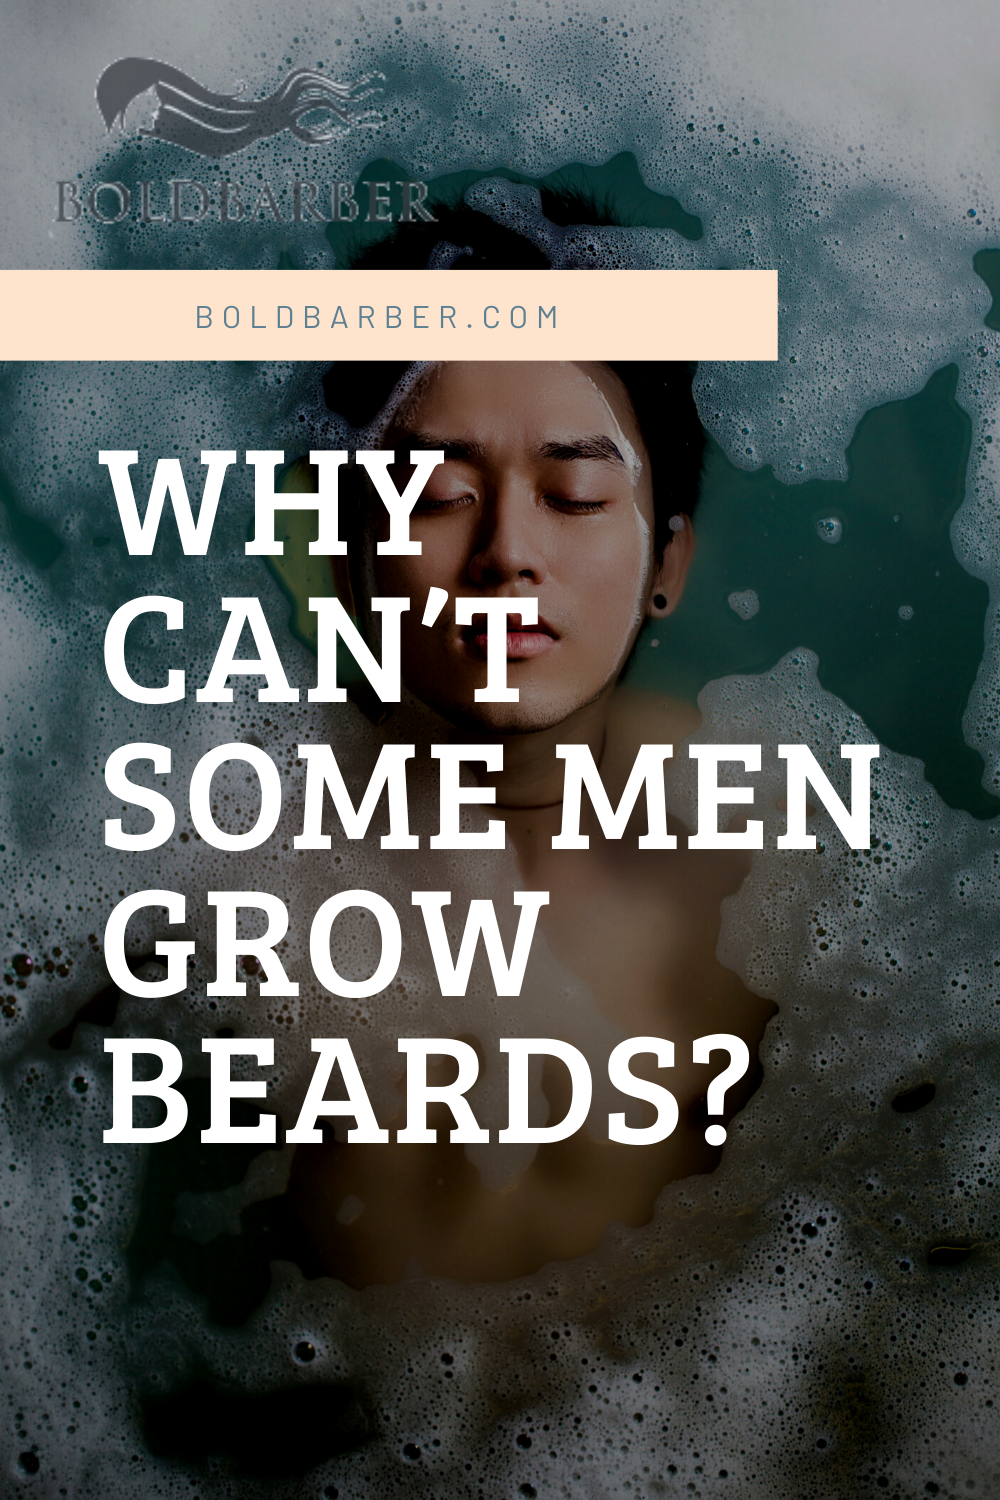 Everyone want a thick and soft beard but unfortunately not everyone can grow one. Why? What is beard genetics and is that a reason why you don't have a beard? #BoldBarber #beardthings #beard #barber #beardedmen